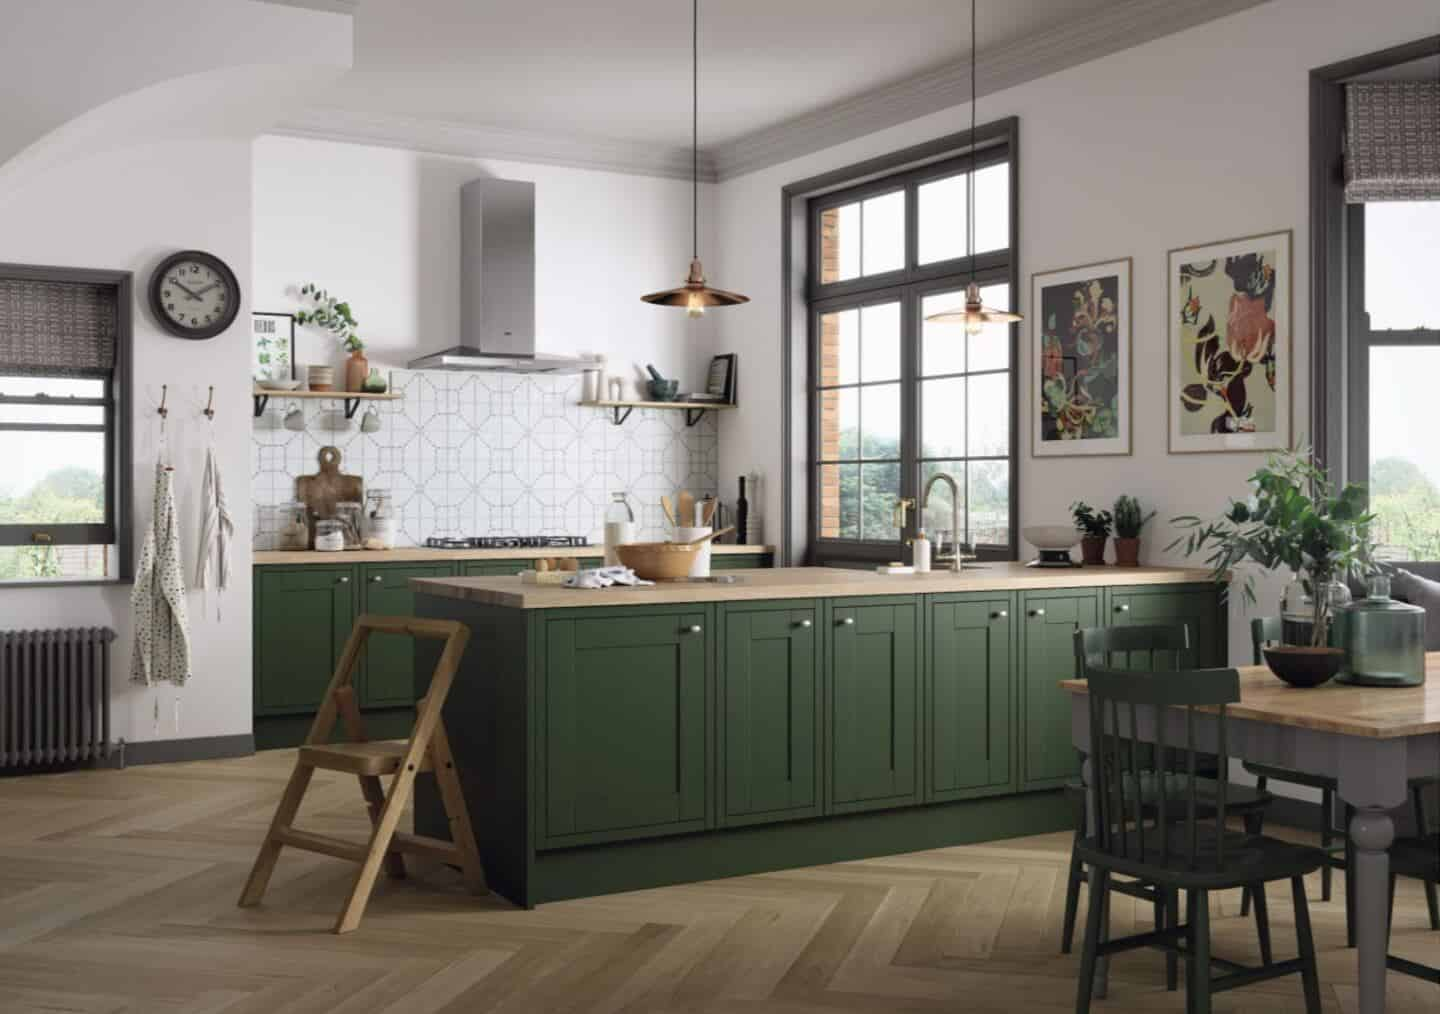 MAgnet's Somerton Kitchen in Forest Walk with a wooden worktop. Natural light floods in fom two large windows.